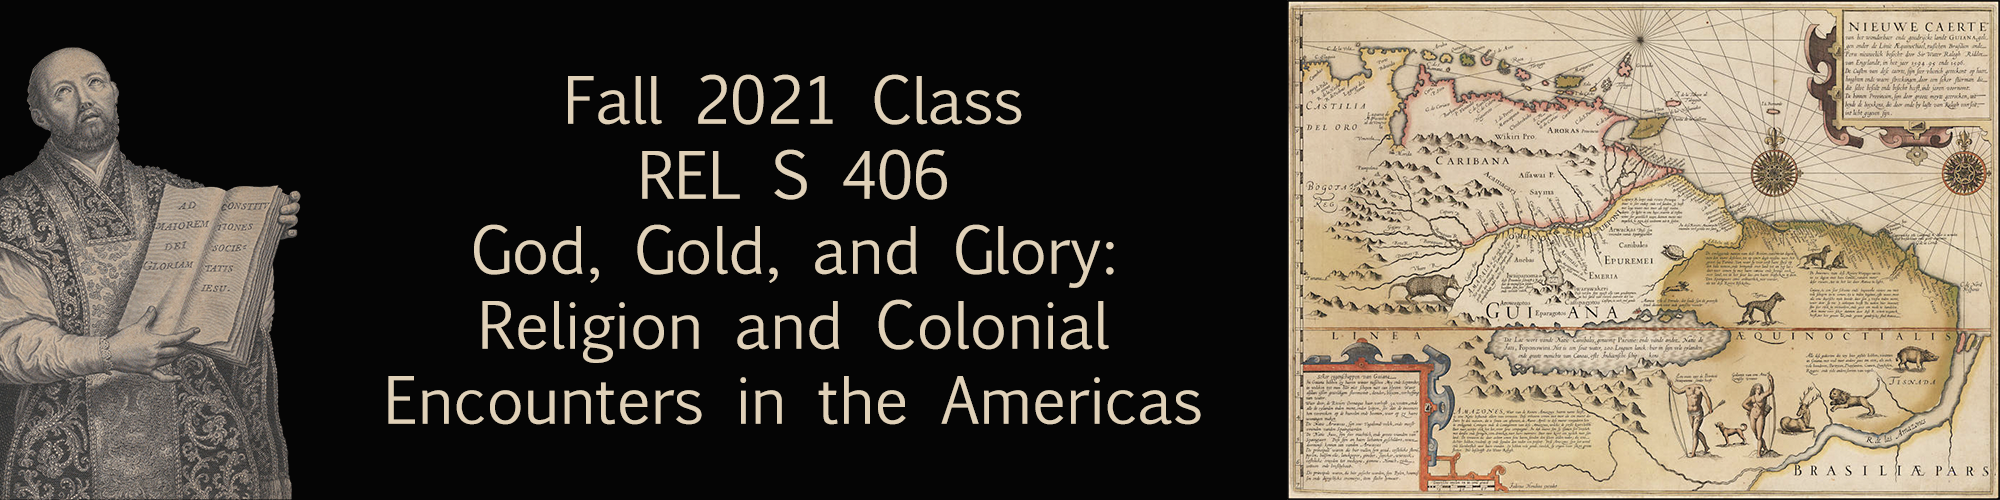 Fall 2021 Course REL S 406 God, Gold, and Glory: Religion and Colonial Encounters in the Americas